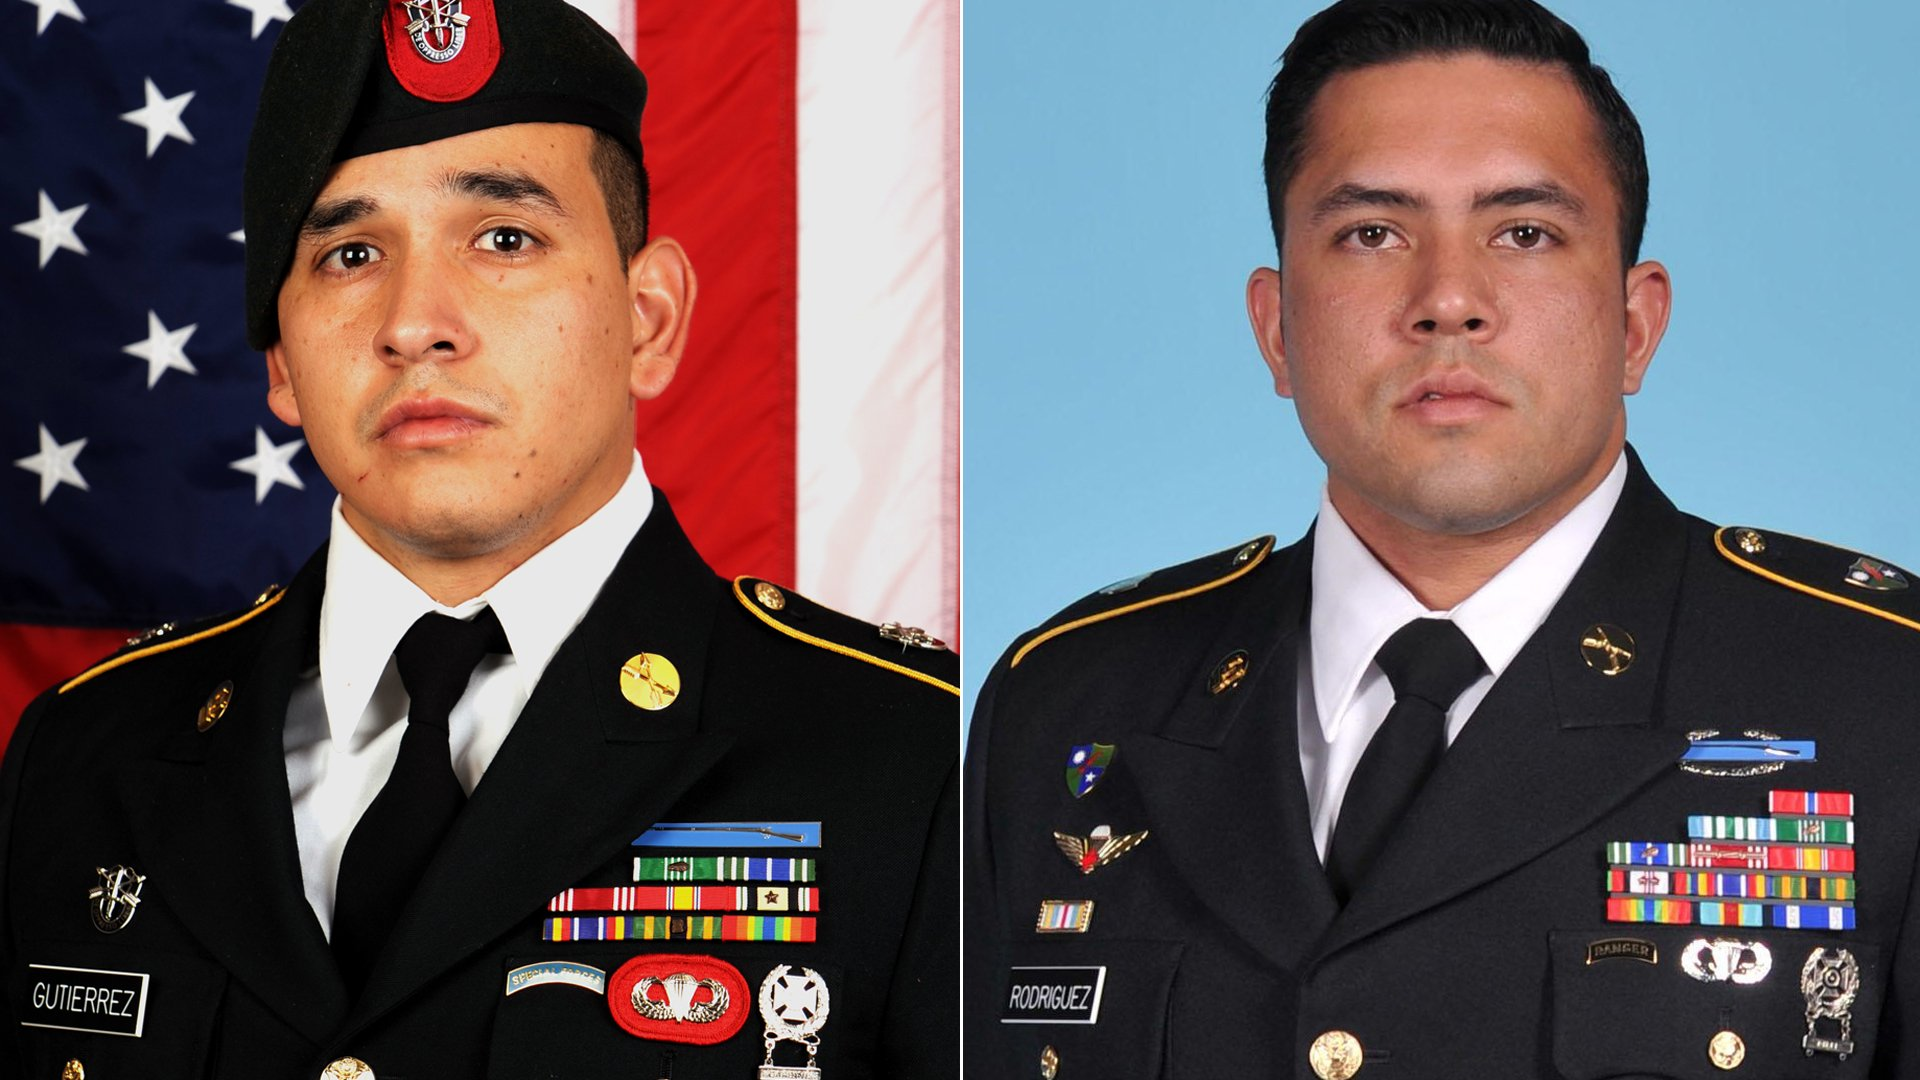 Javier Jaguar Gutierrez and Antonio Rey Rodriguez appear in photos released by the U.S. Department of Defense on Feb. 9, 2020.